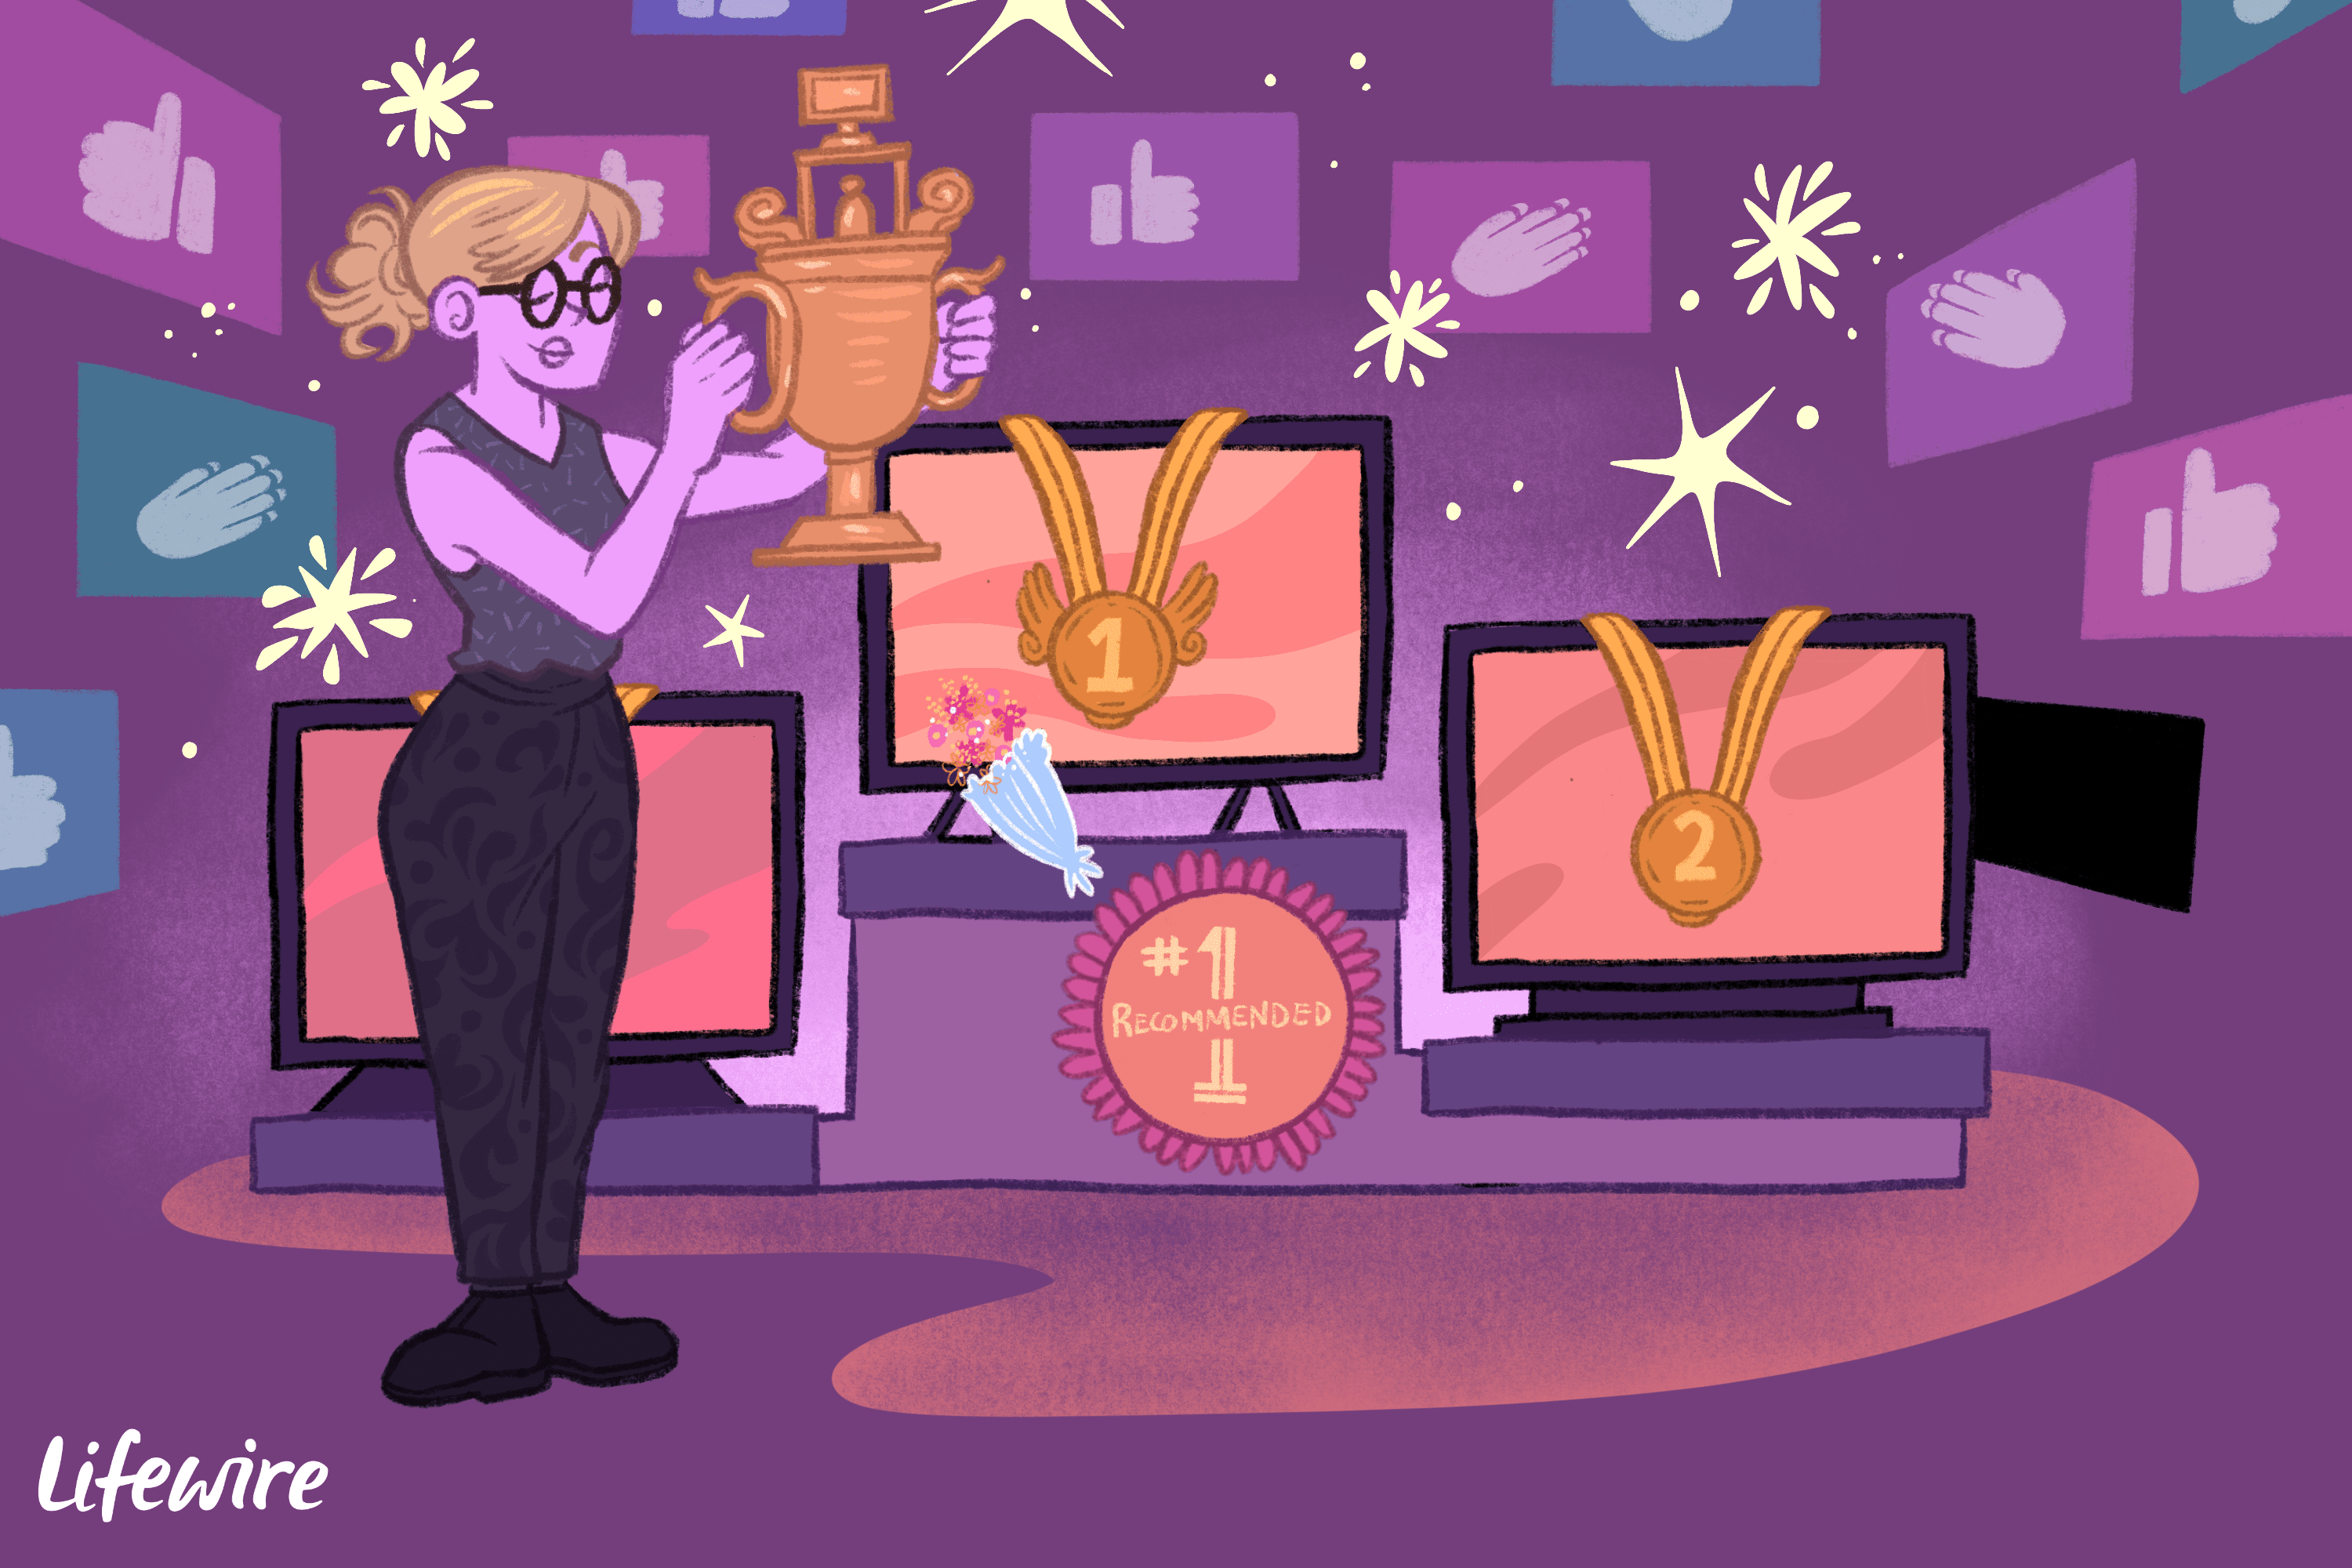 Person holding a trophy, choosing from several HDTVs